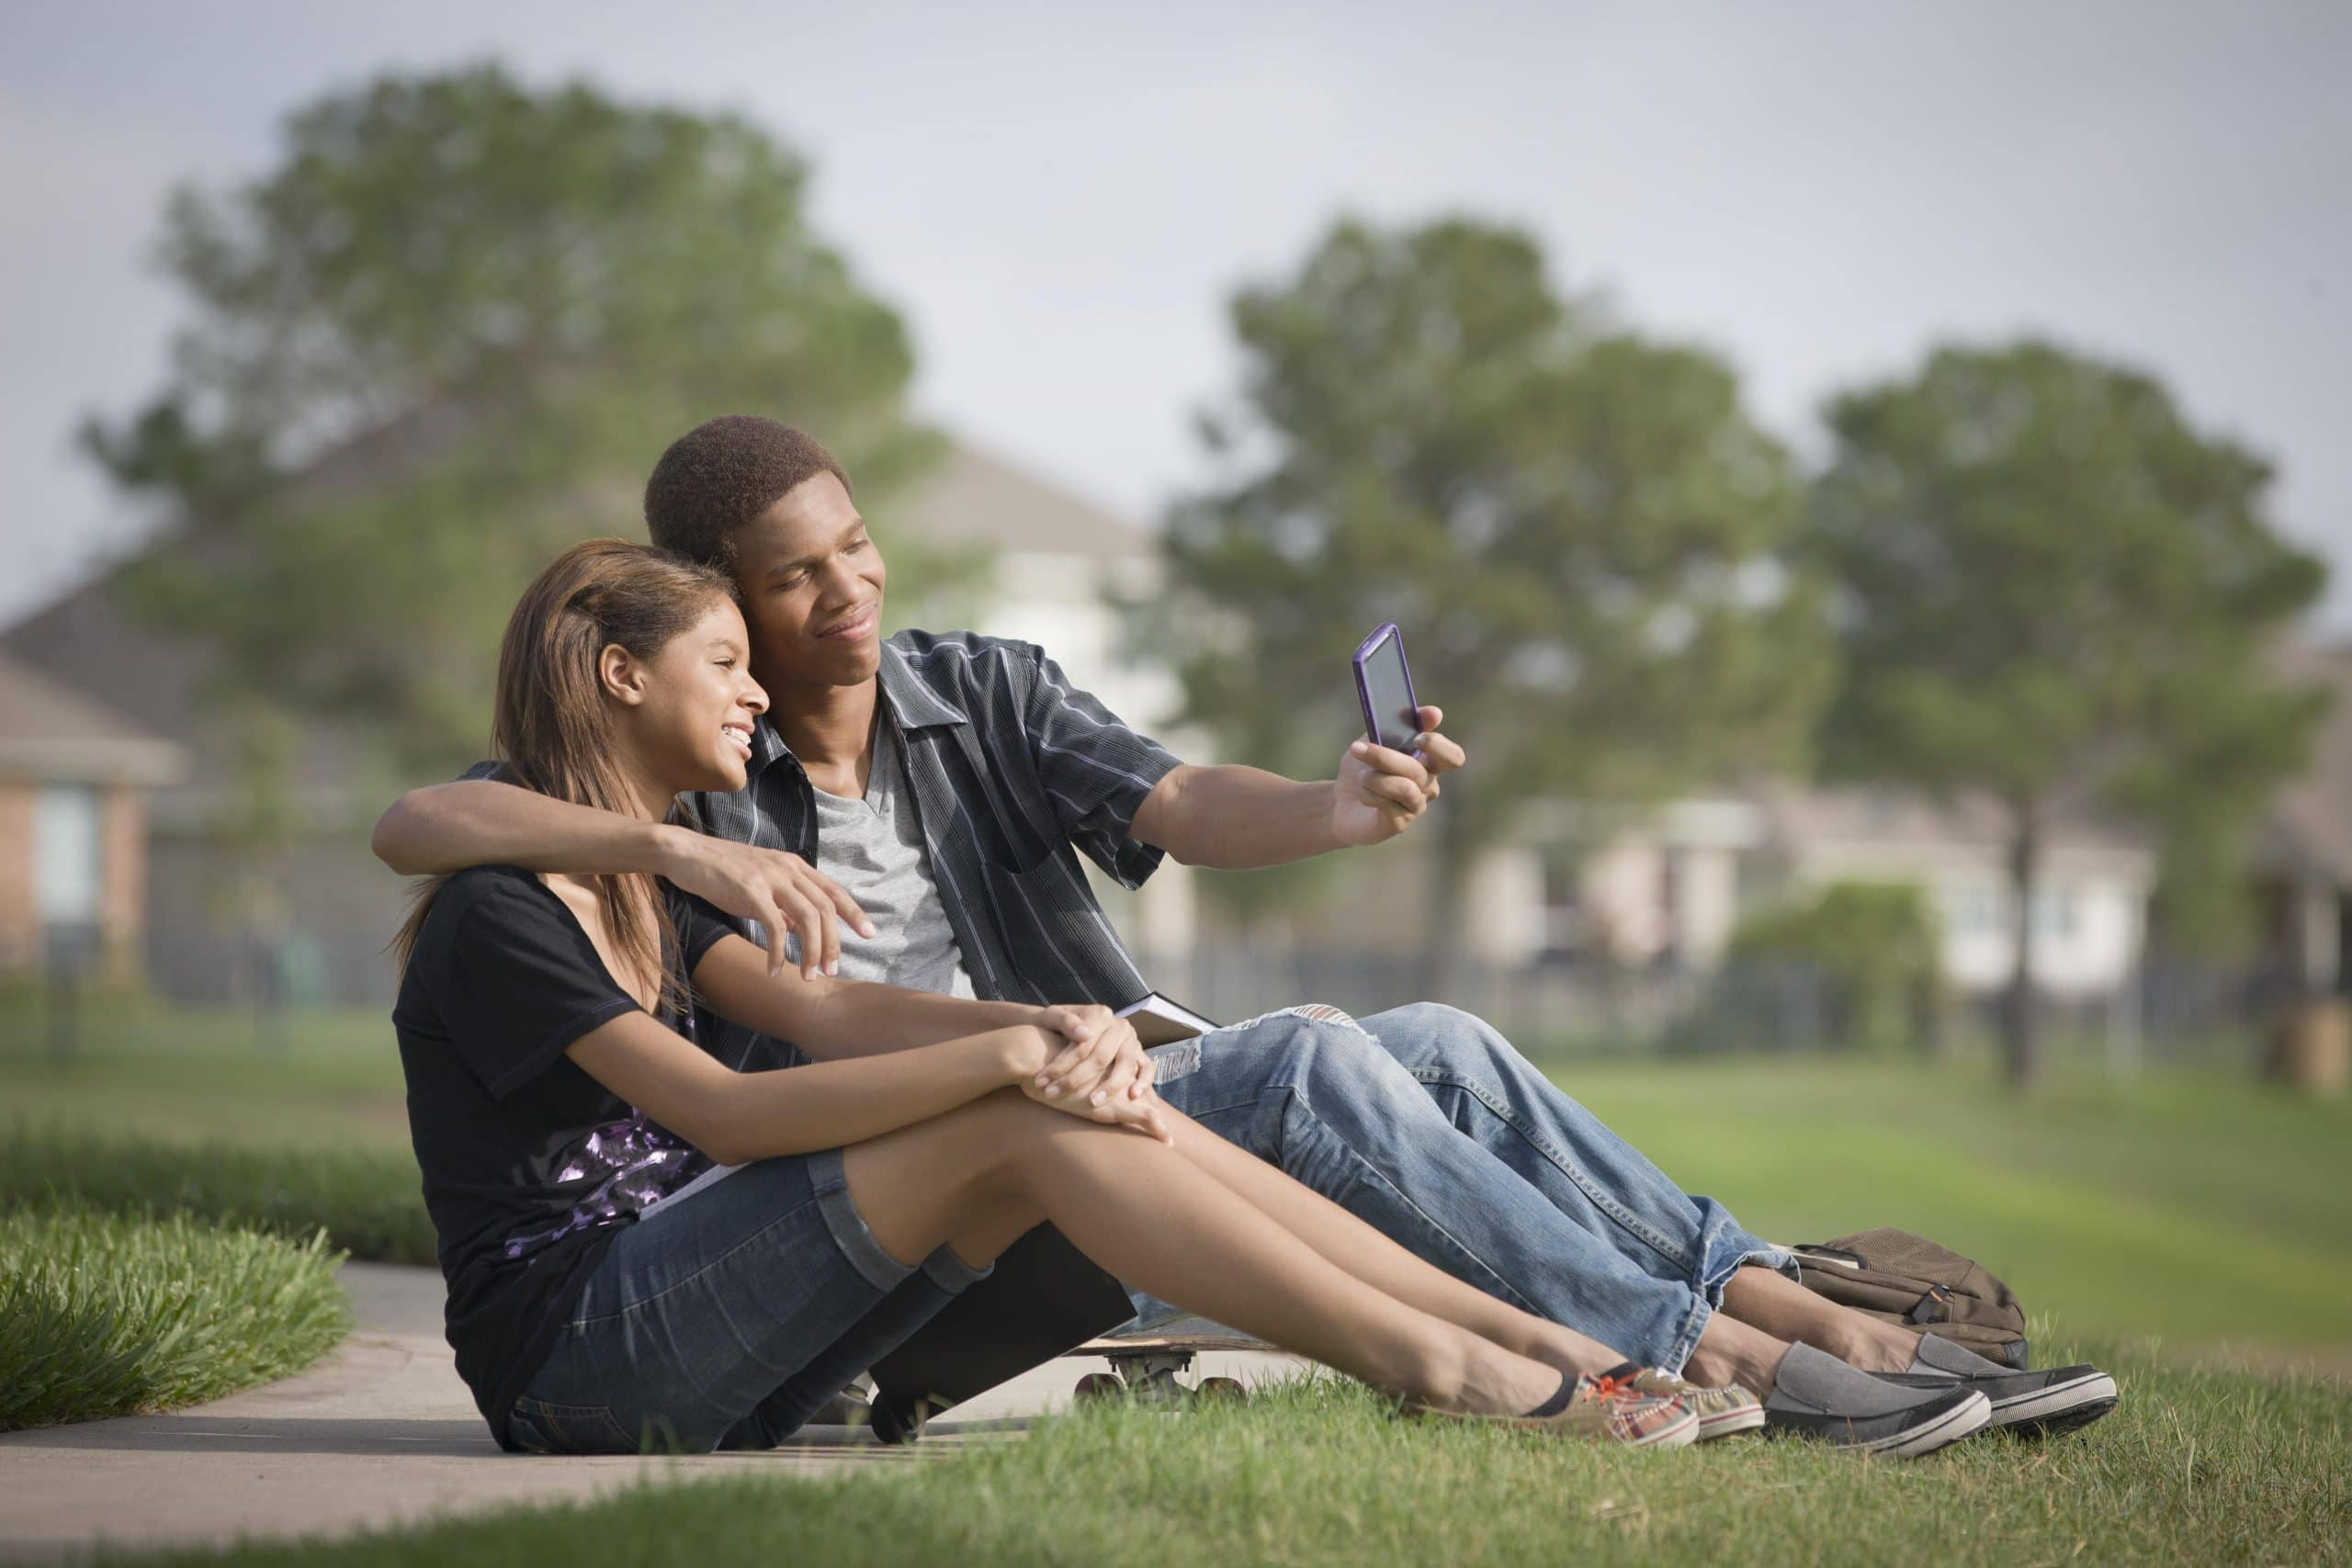 Find the best nigerian dating sites curiouslytwisted